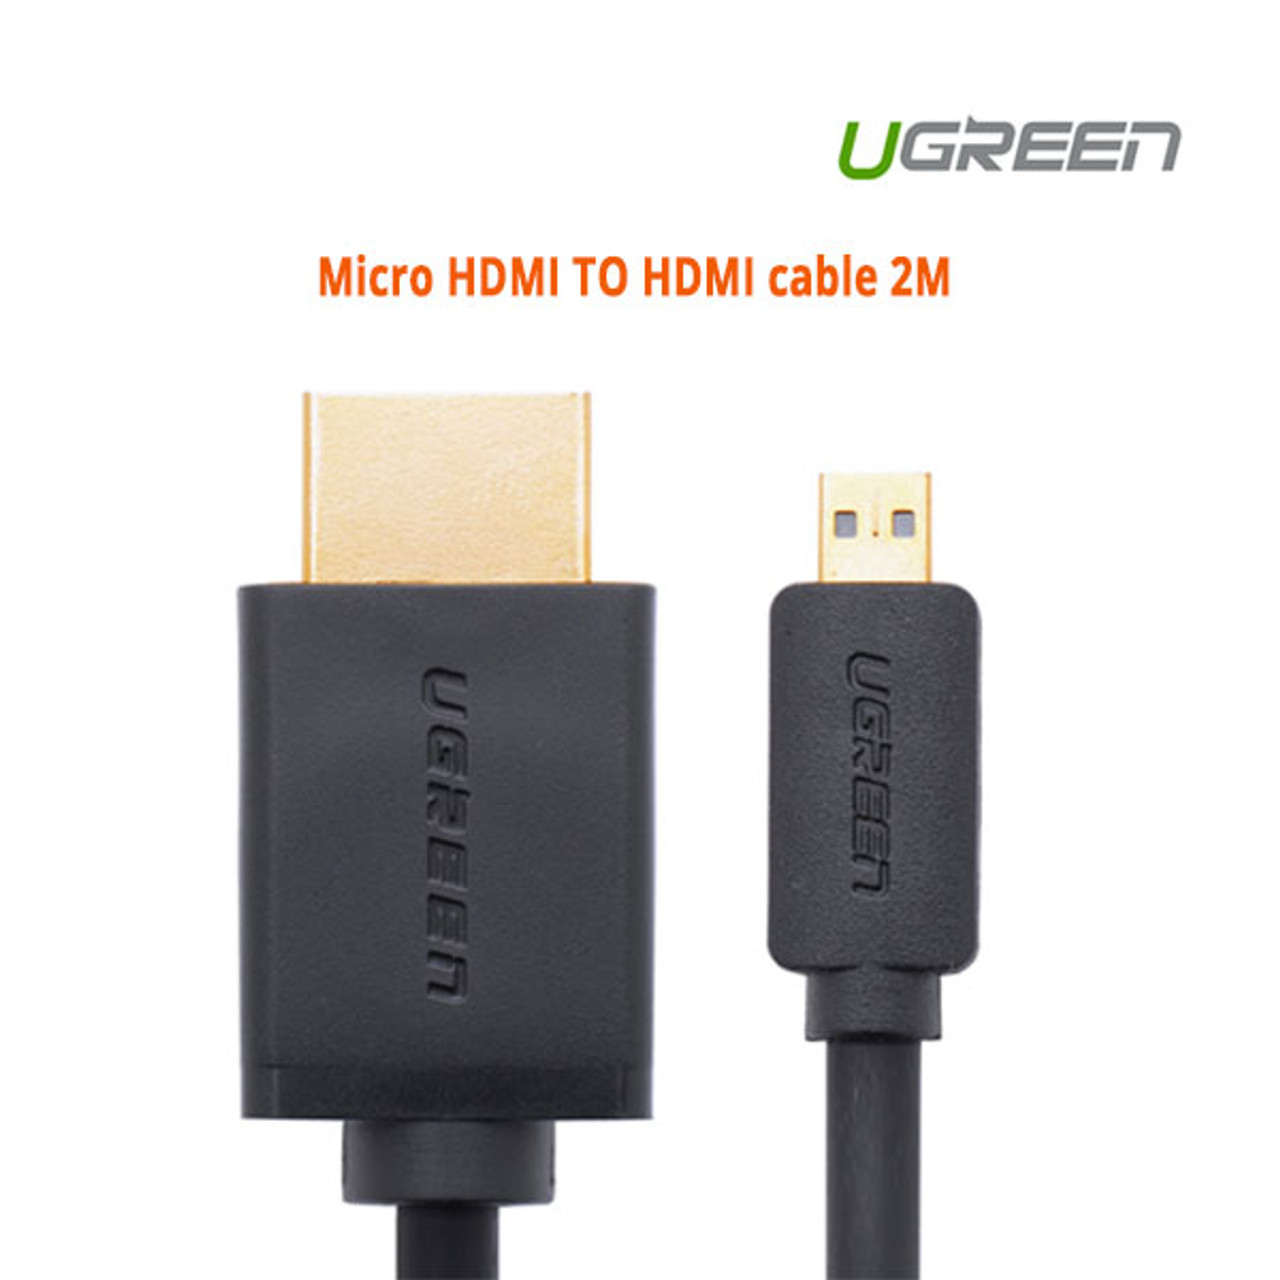 Product image for 2M UGreen Micro HDMI TO HDMI cable | CX Computer Superstore